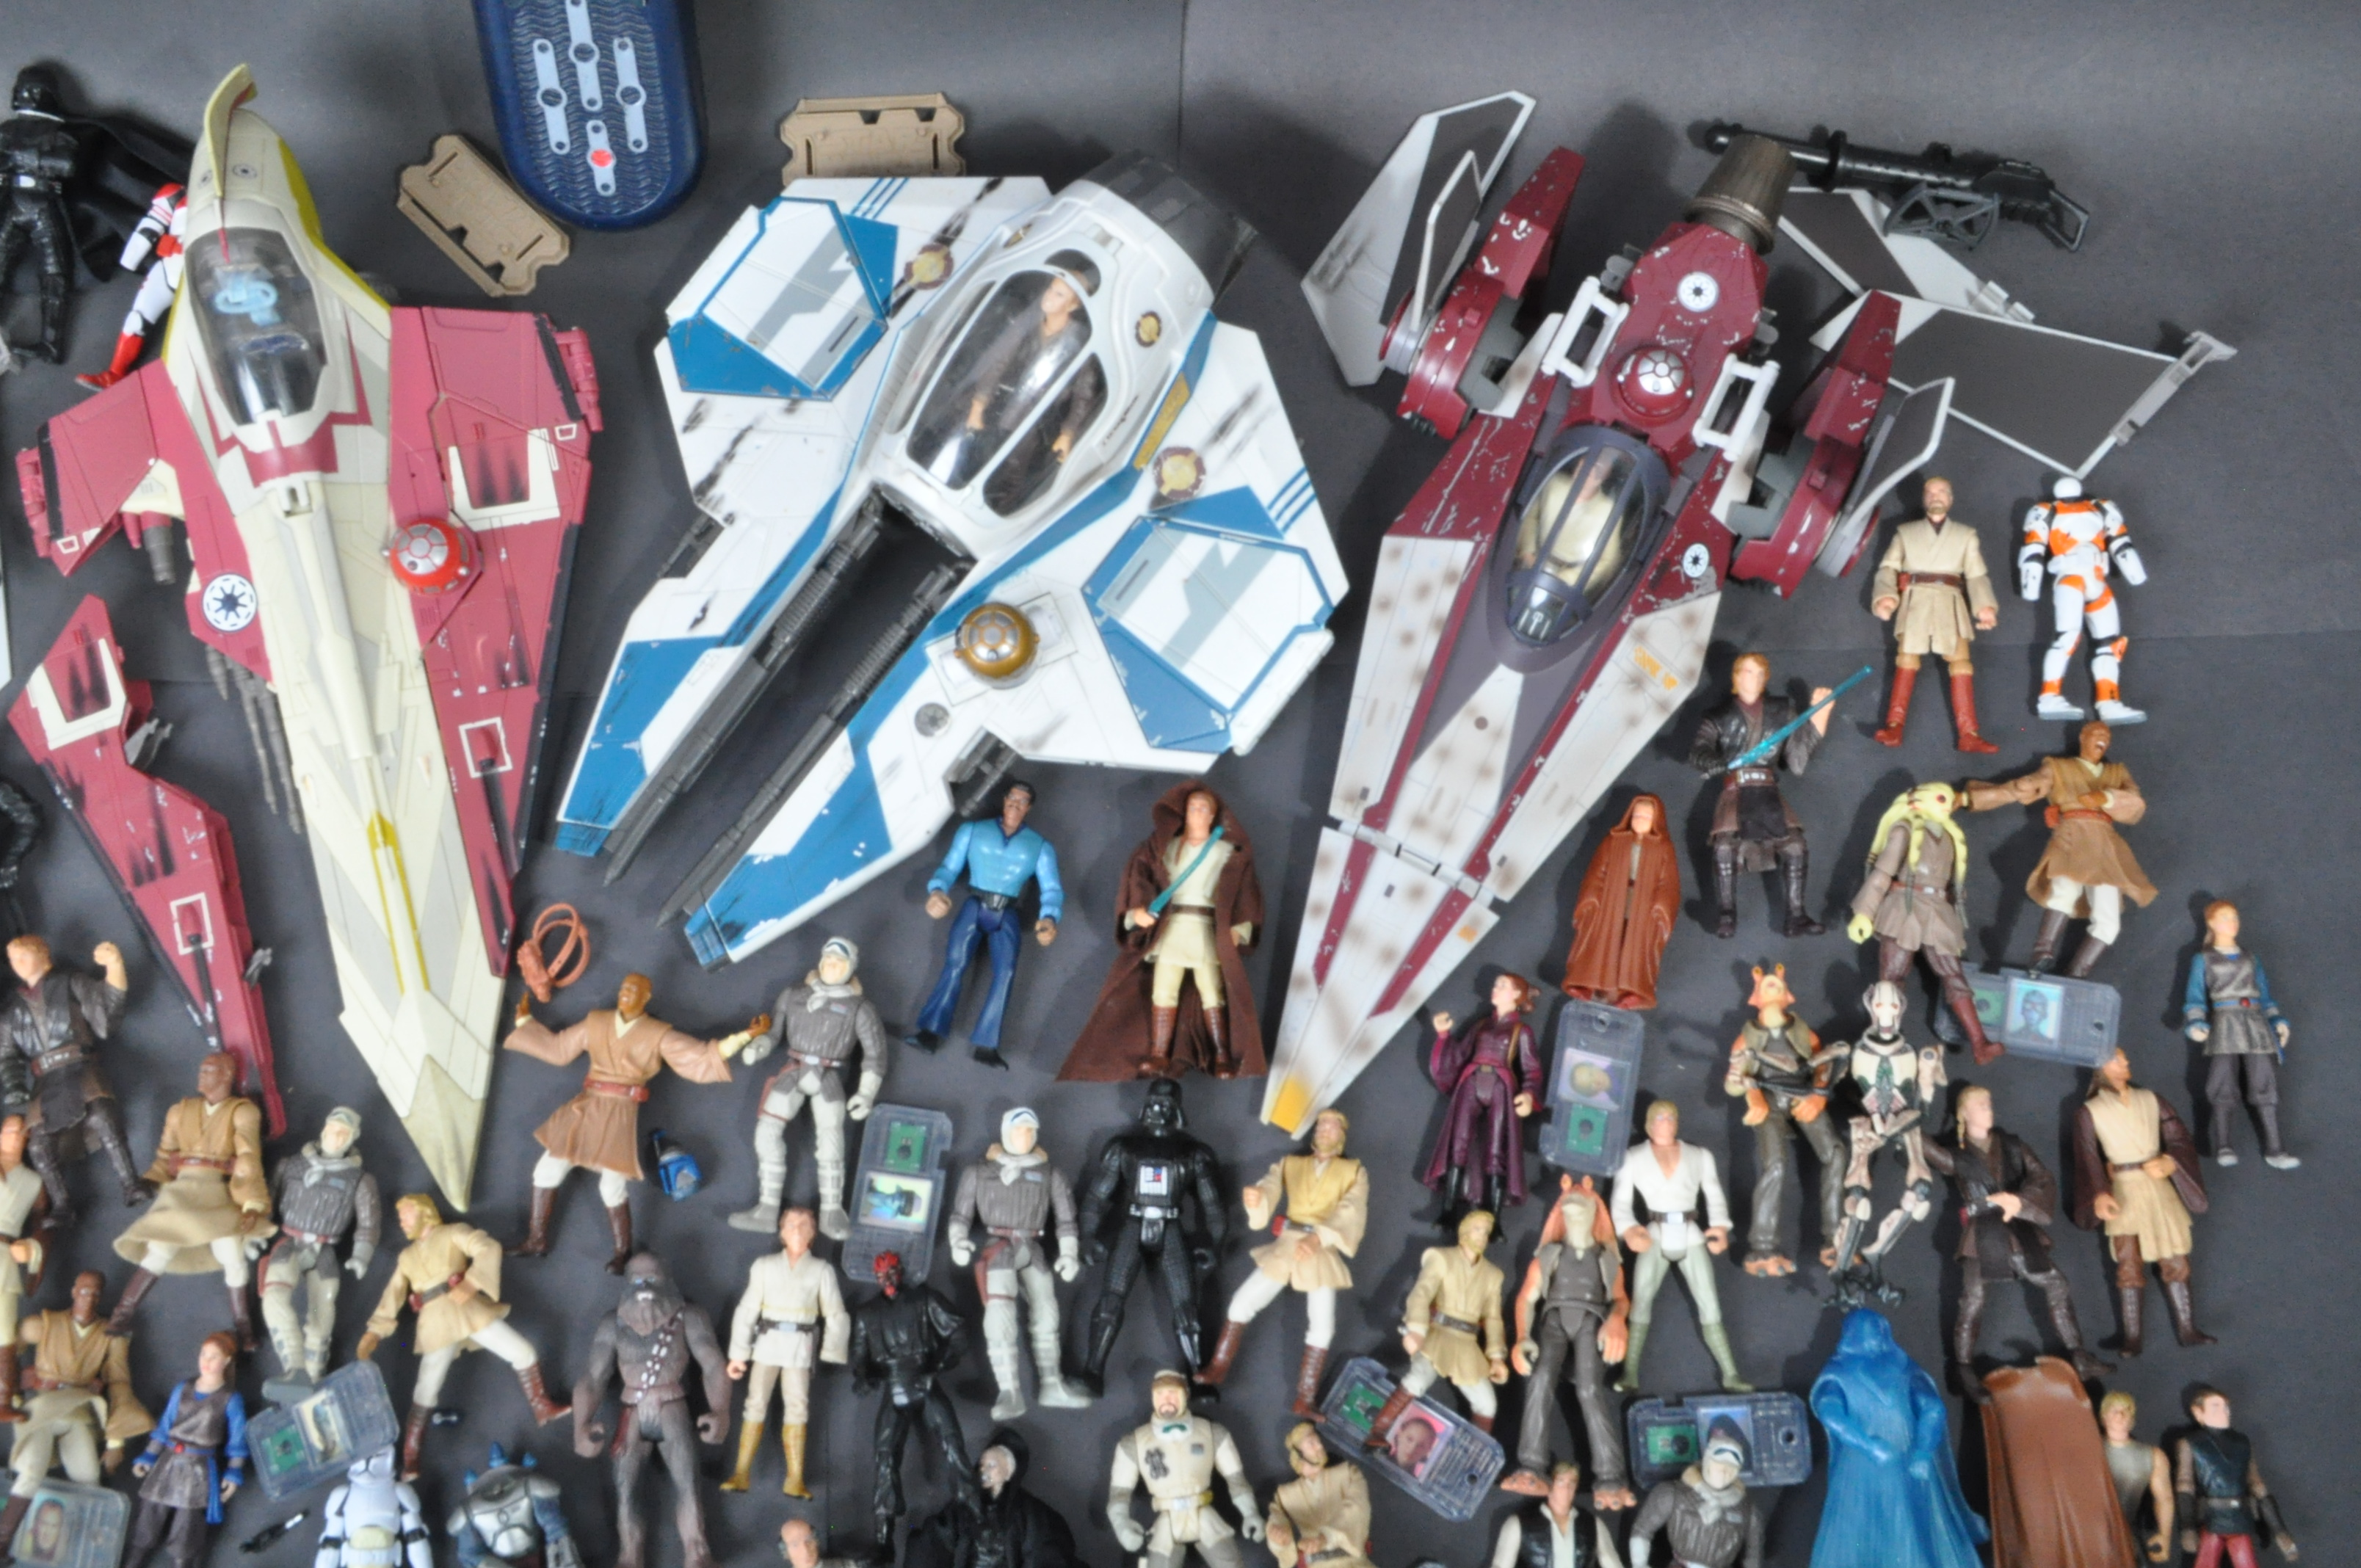 STAR WARS - LARGE COLLECTION KENNER / HASBRO CLONE WARS & OTHER FIGURES - Image 5 of 10